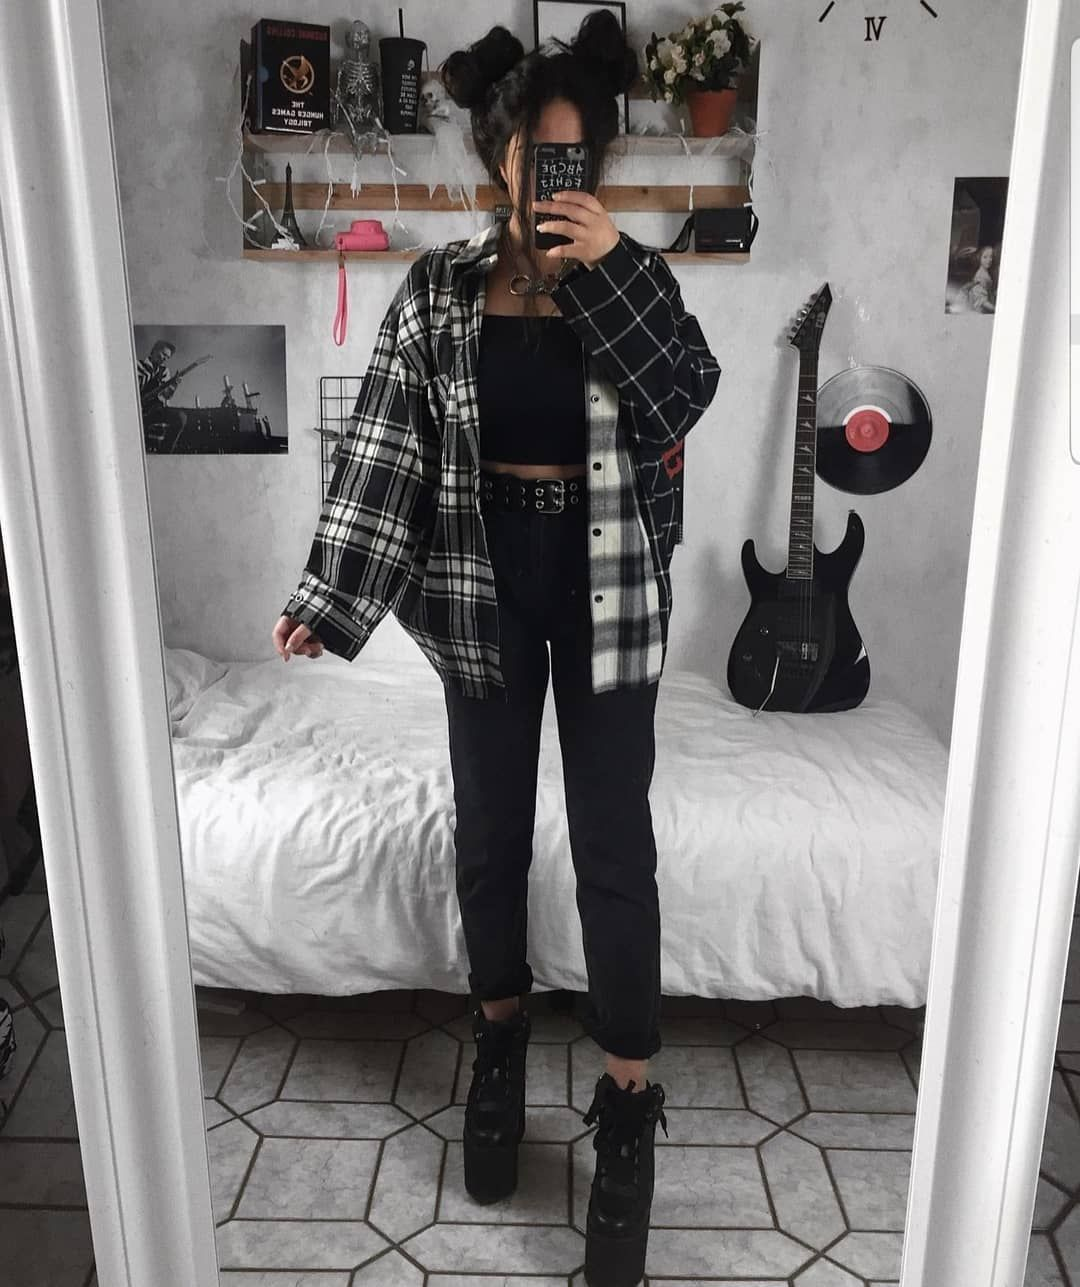 "Photo of Rock Style on Instagram: ""1, 2 or 3? Credit: @ramalamax ♡ ♡ ♡ ♡ ♡ ♡ ♡ ♡ ♡ #rock #rockstyle #90sstyle #grungestyle #alternative #vintagefashion #fashion #grunge…"" #wintergrunge"